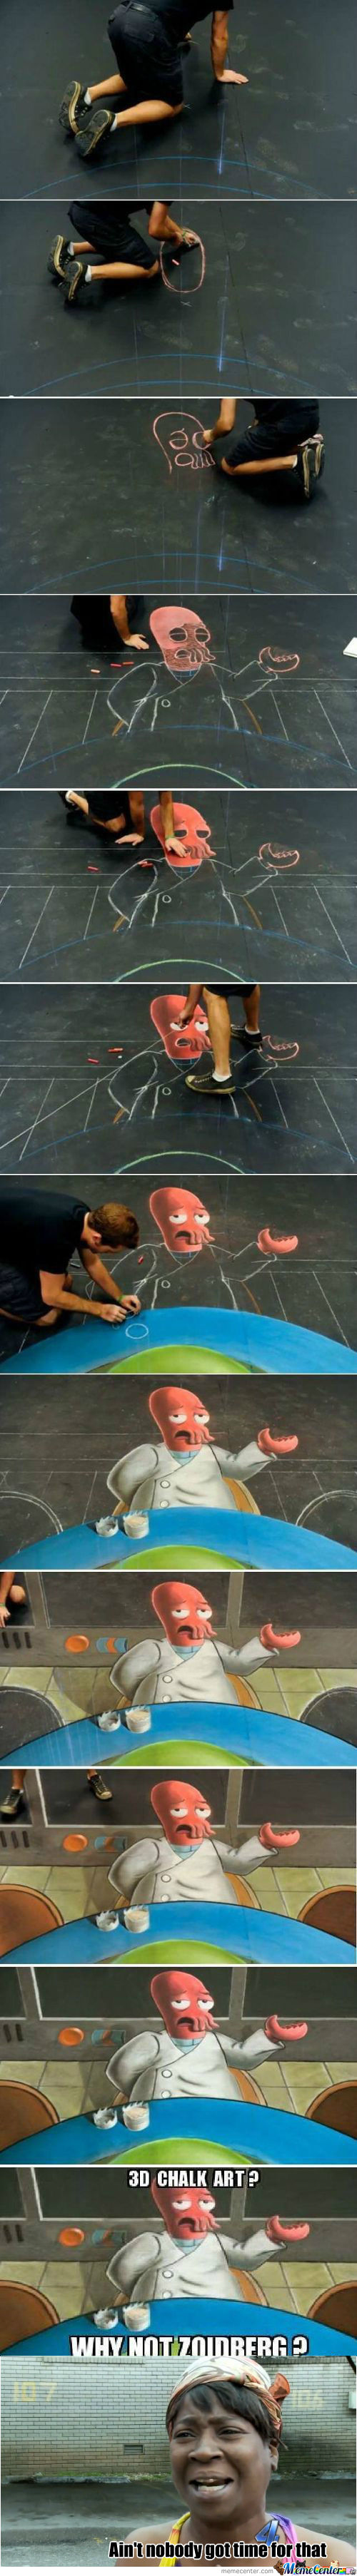 [RMX] 3D Chalk Art? Why Not....